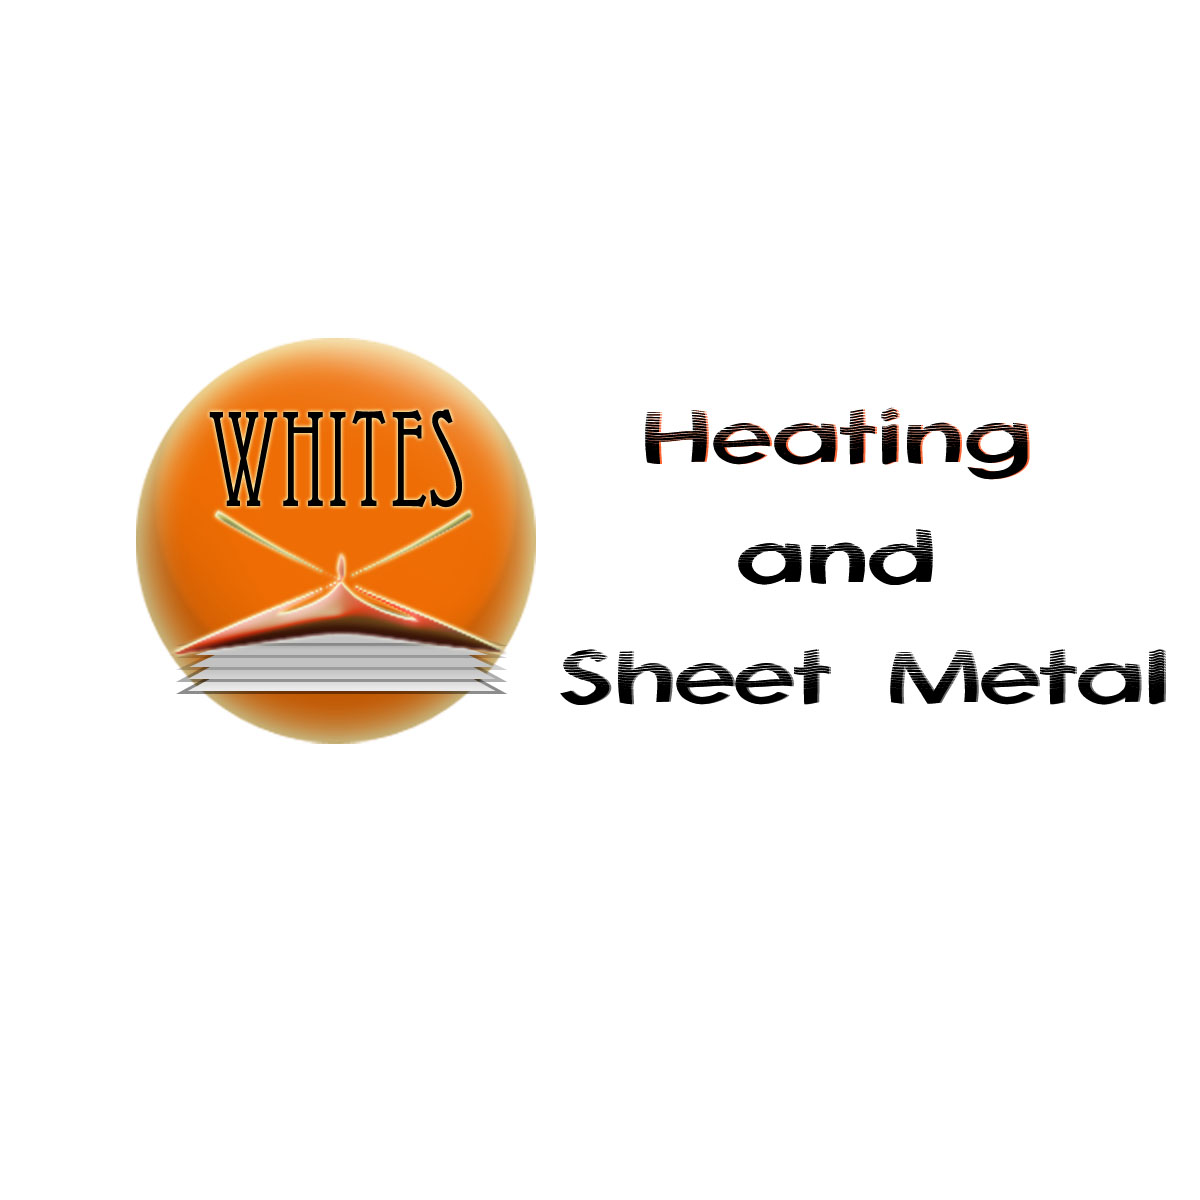 Logo Design by Moag - Entry No. 152 in the Logo Design Contest Imaginative Logo Design for White's Heating and Sheet Metal.